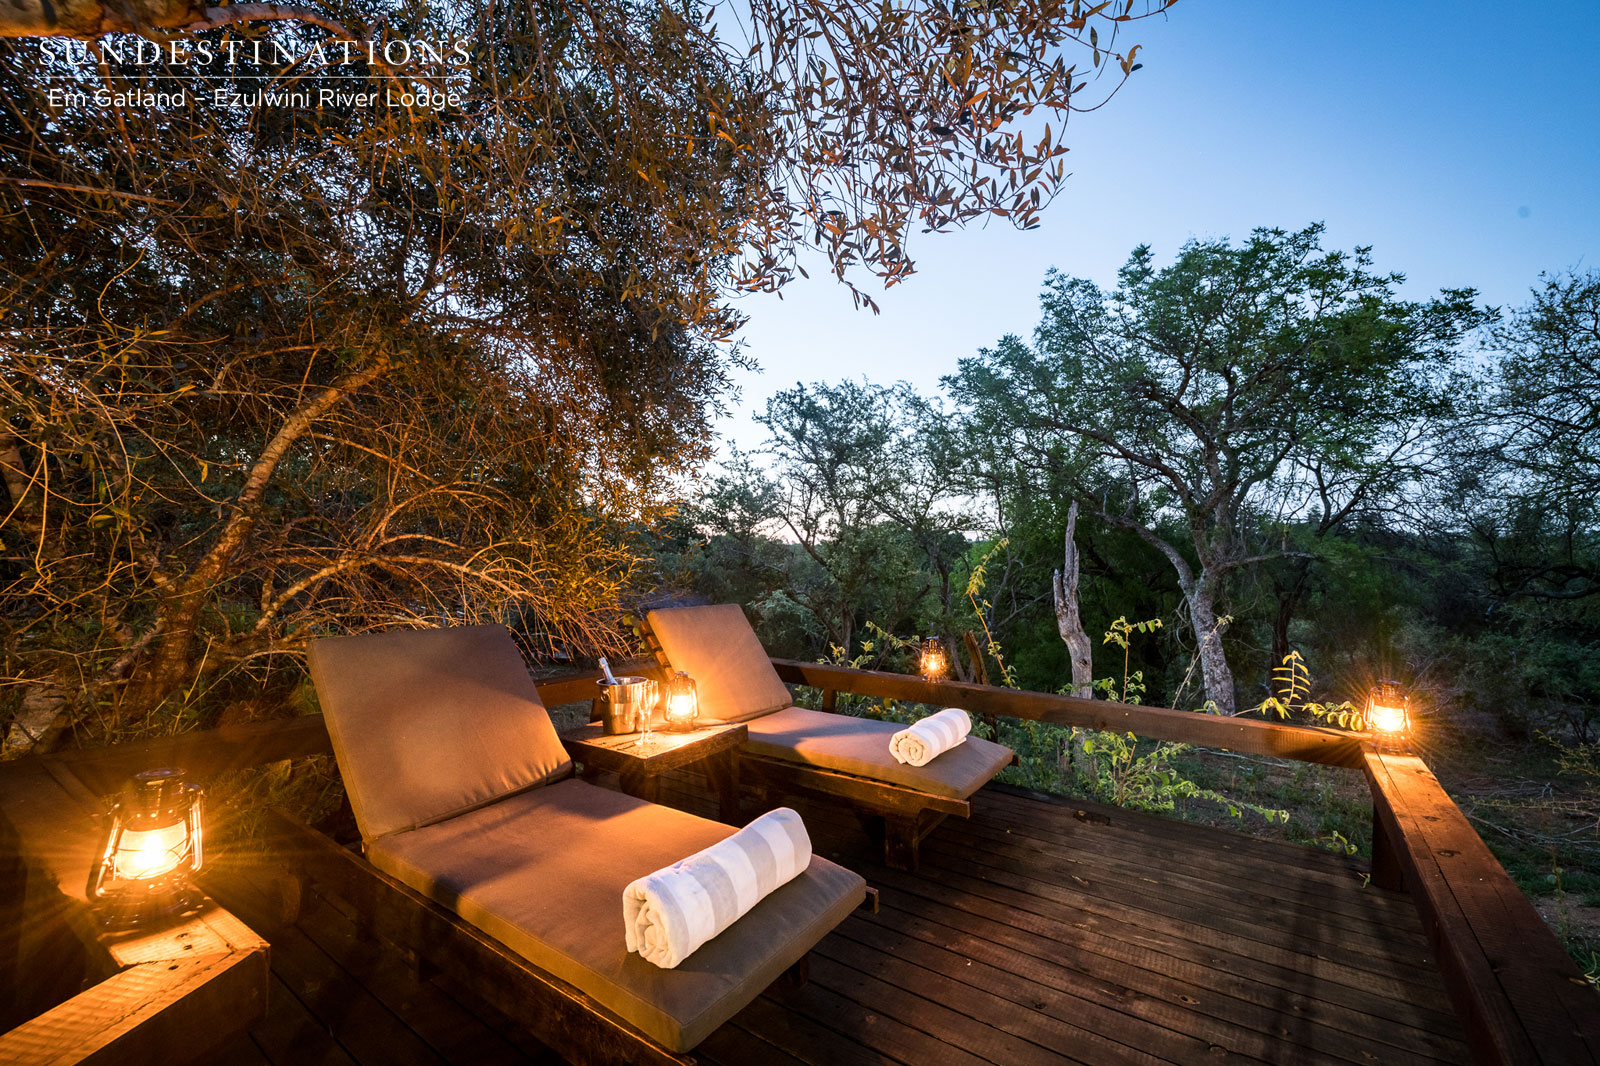 The Loved-up Luxury Honeymoon Suite at Ezulwini River Lodge